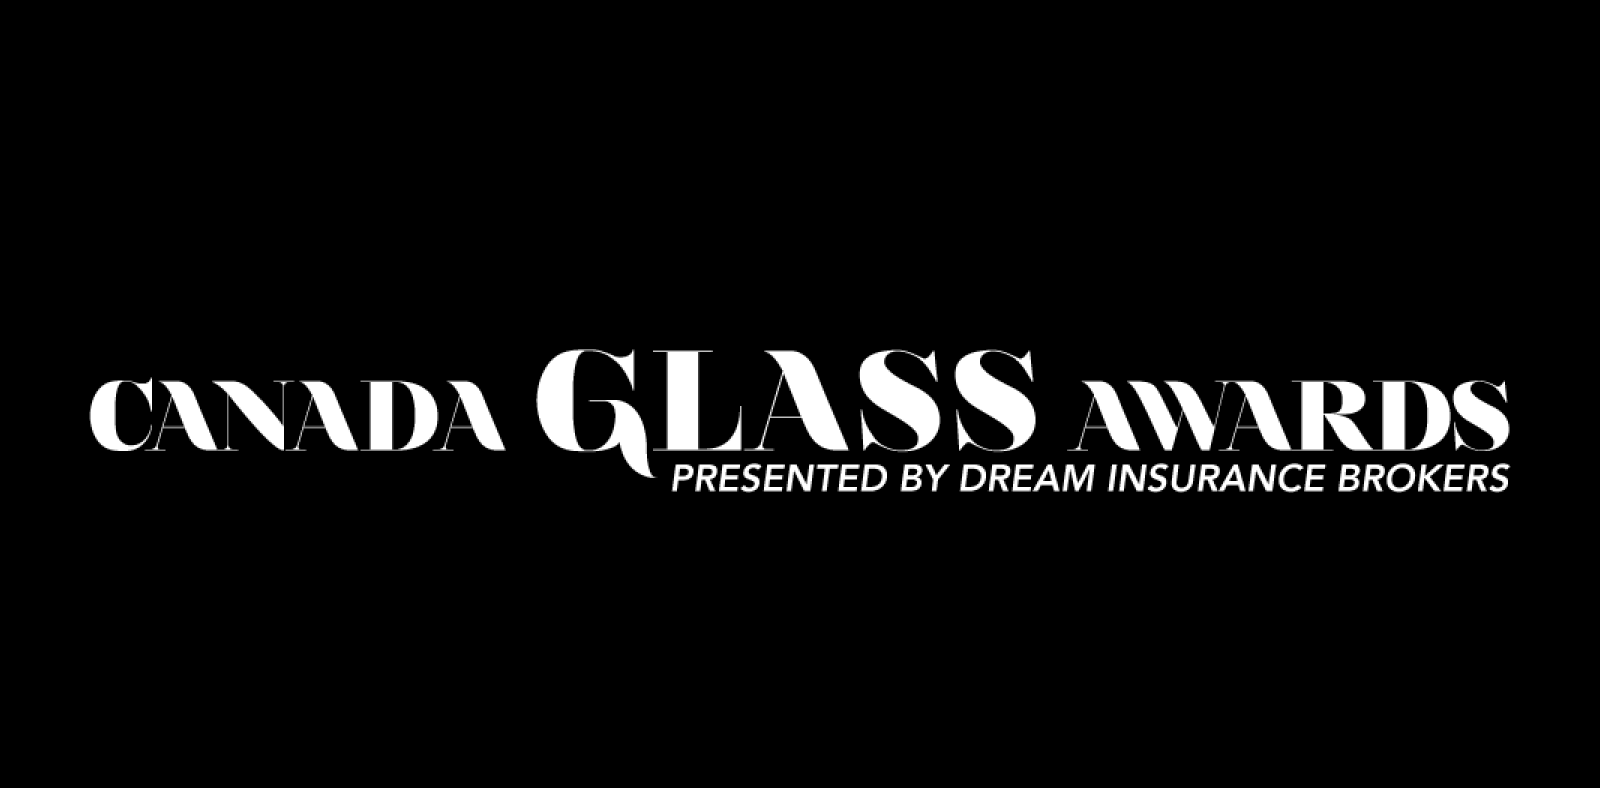 Canada Glass Awards Logo